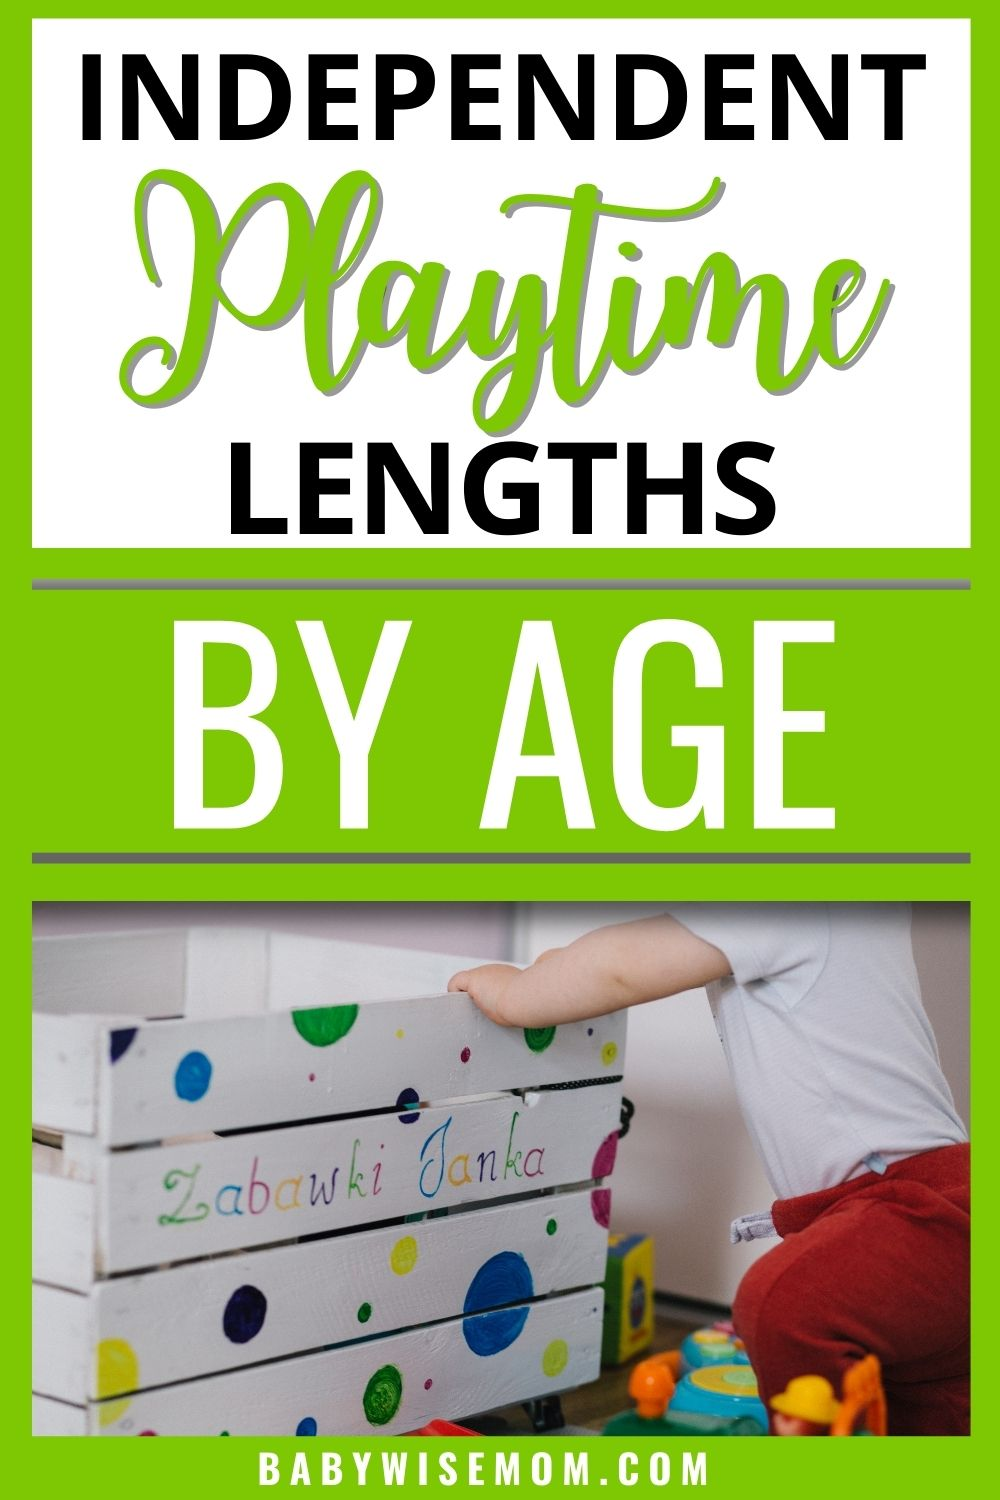 Independent playtime lengths by age